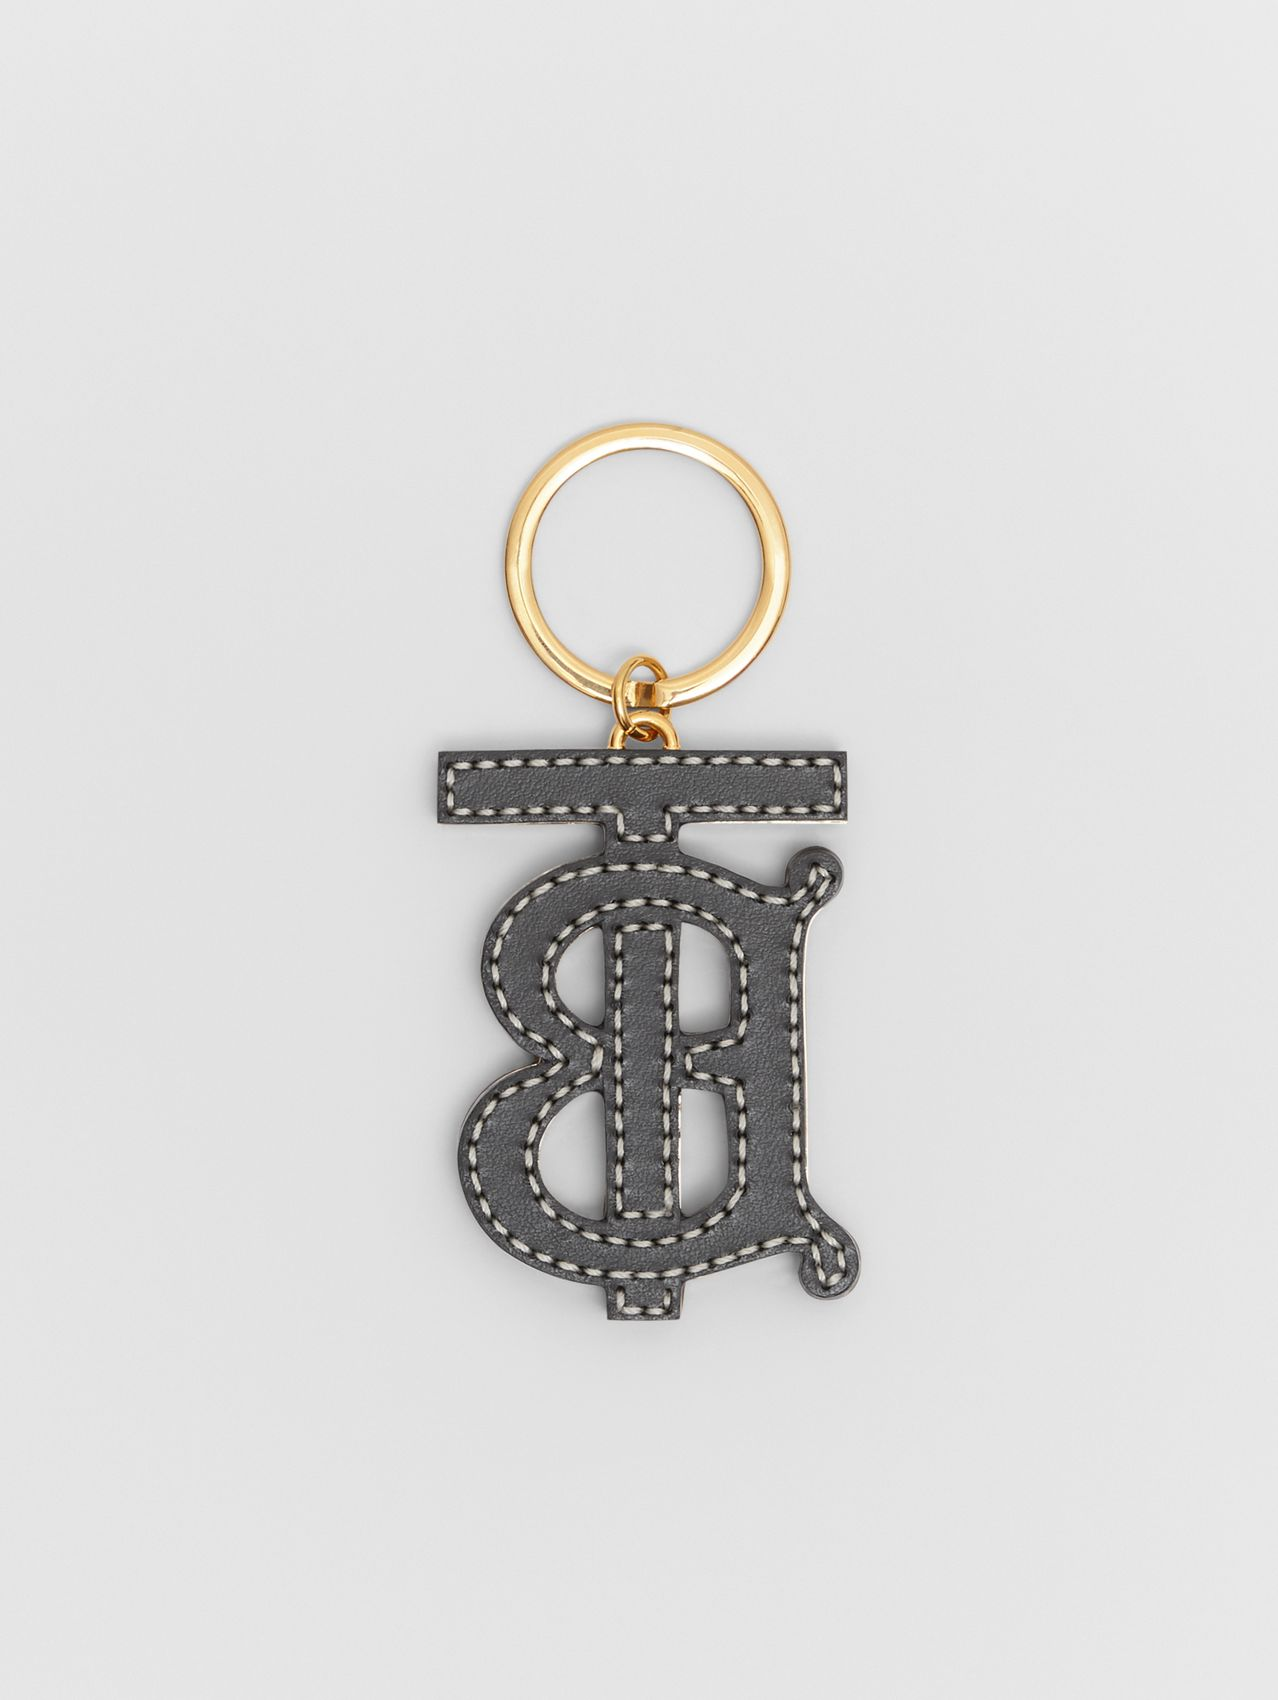 Monogram Motif Two-tone Leather Key Charm in Black / Brown